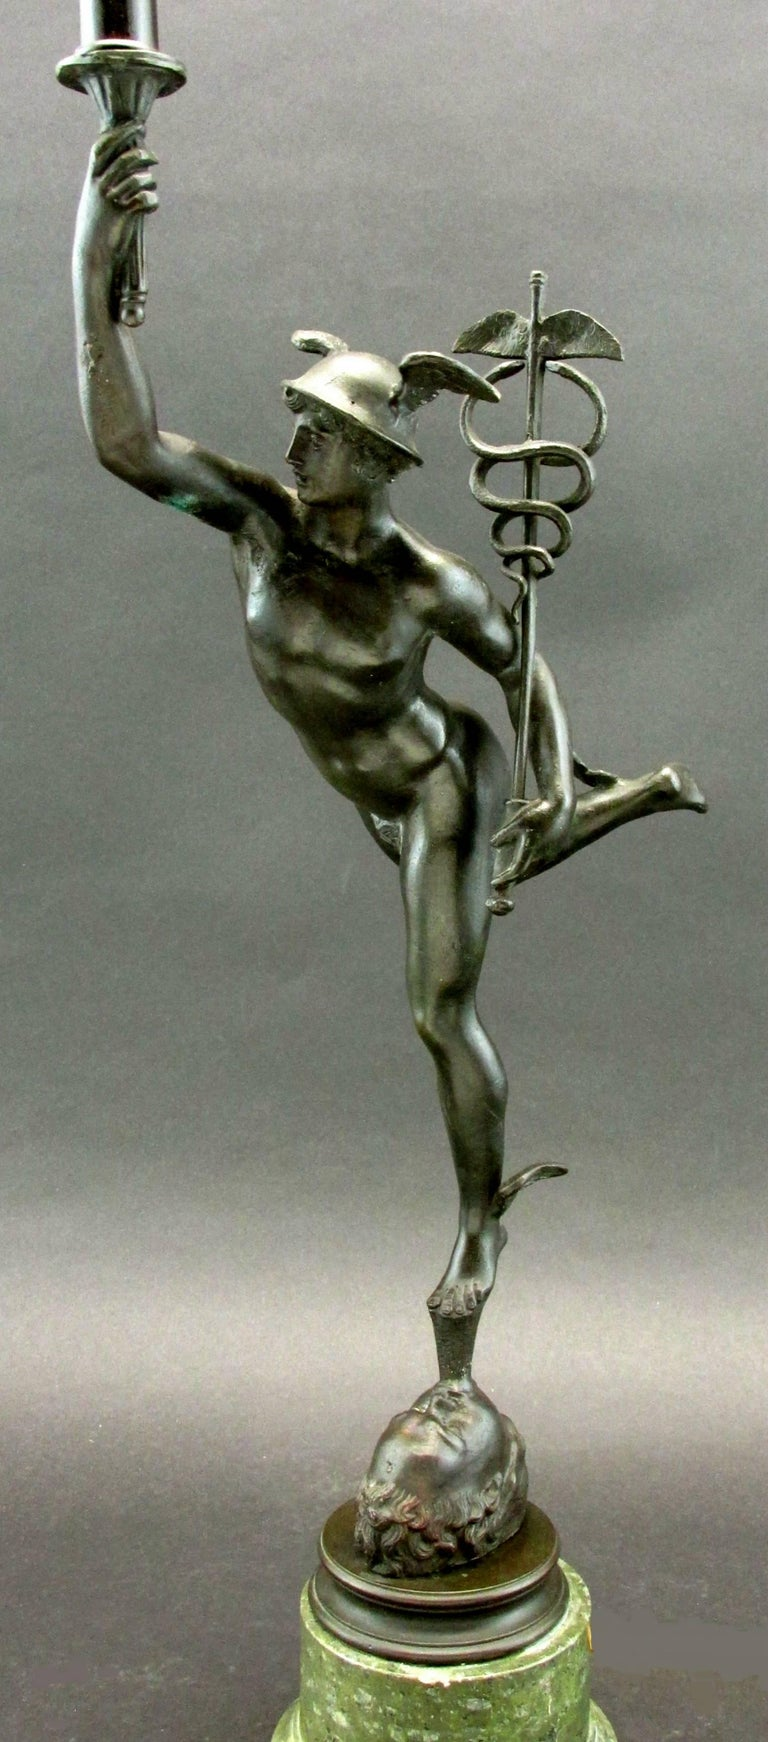 The classical figure of Mercury - (Roman god of abundance & commercial success) shown standing atop the mouth of Aeolus (Ruler of the Four Winds), cradling a caduceus in one hand the other arm outstretched towards the heavens. Exhibiting a black /